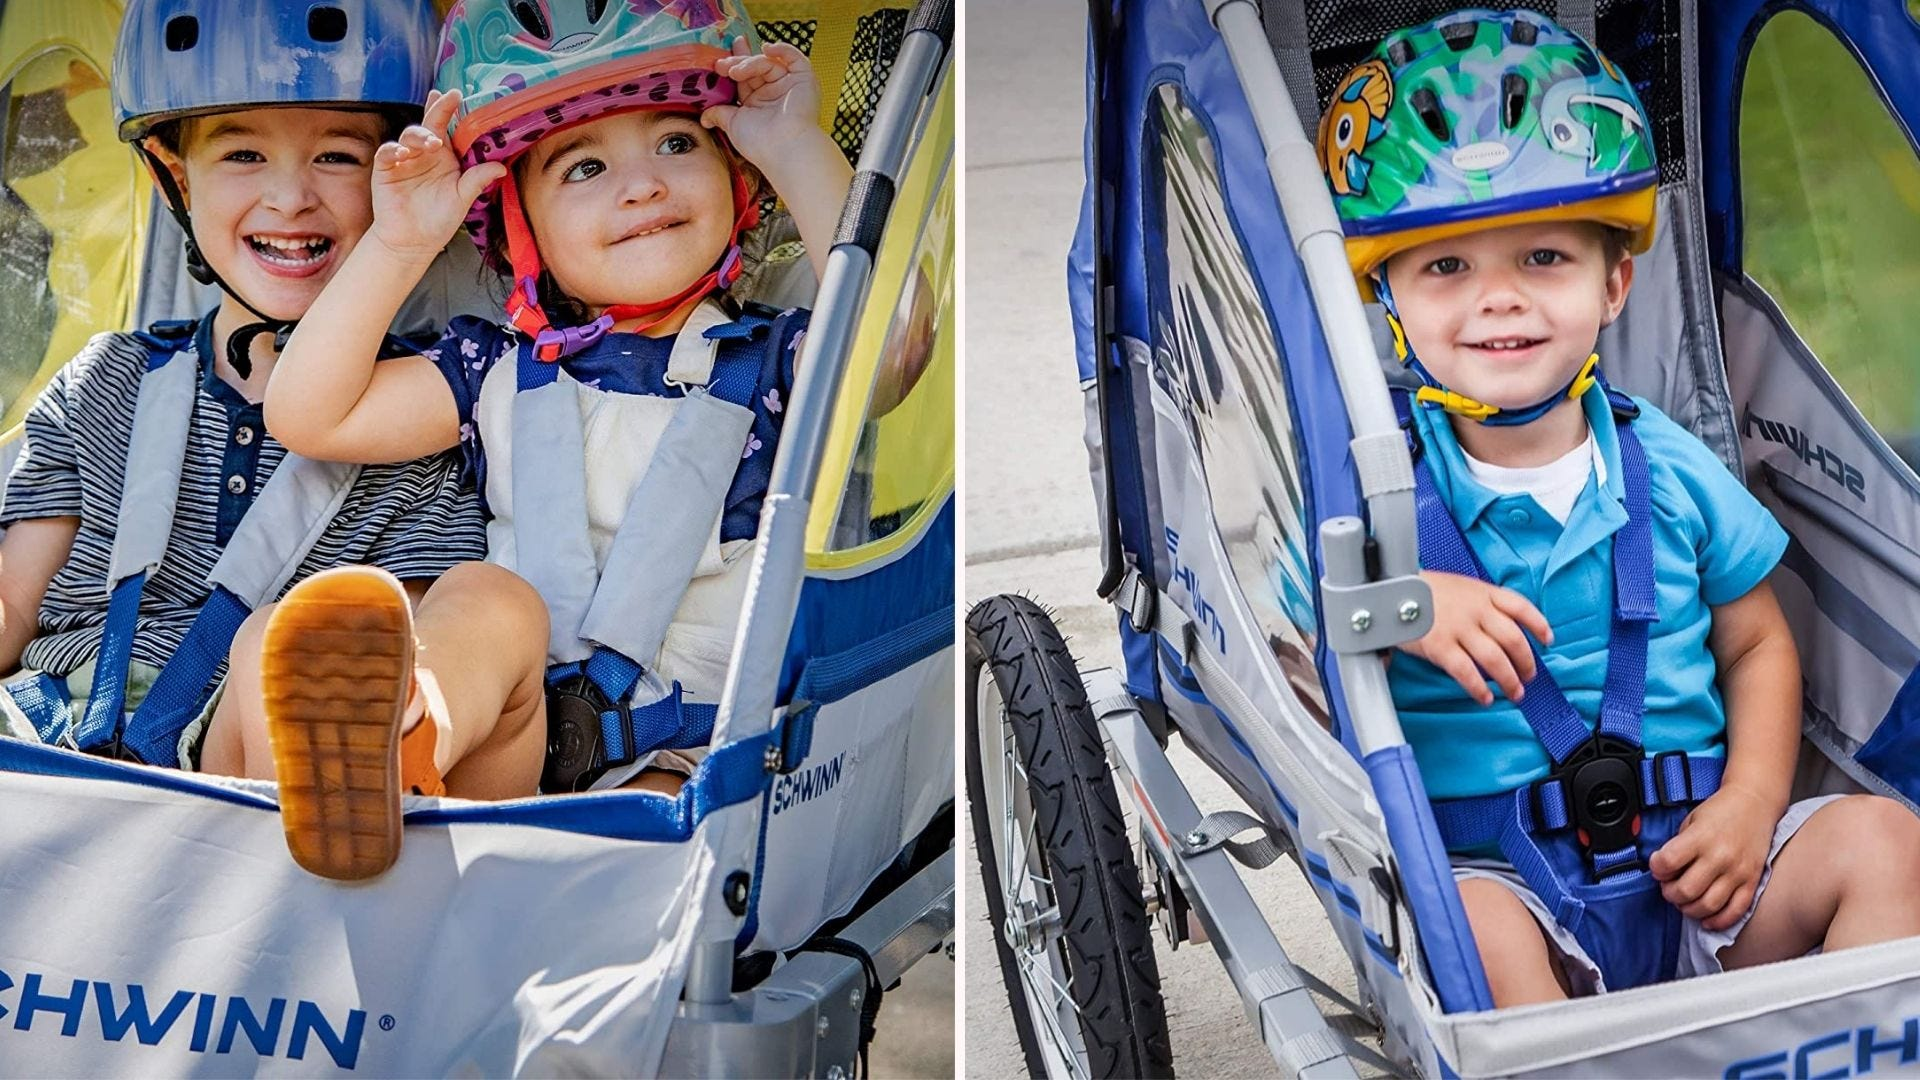 Two images of children riding in a Schwinn Trailblazer trailer. The left is a double seater, and the right image is of a single seater.